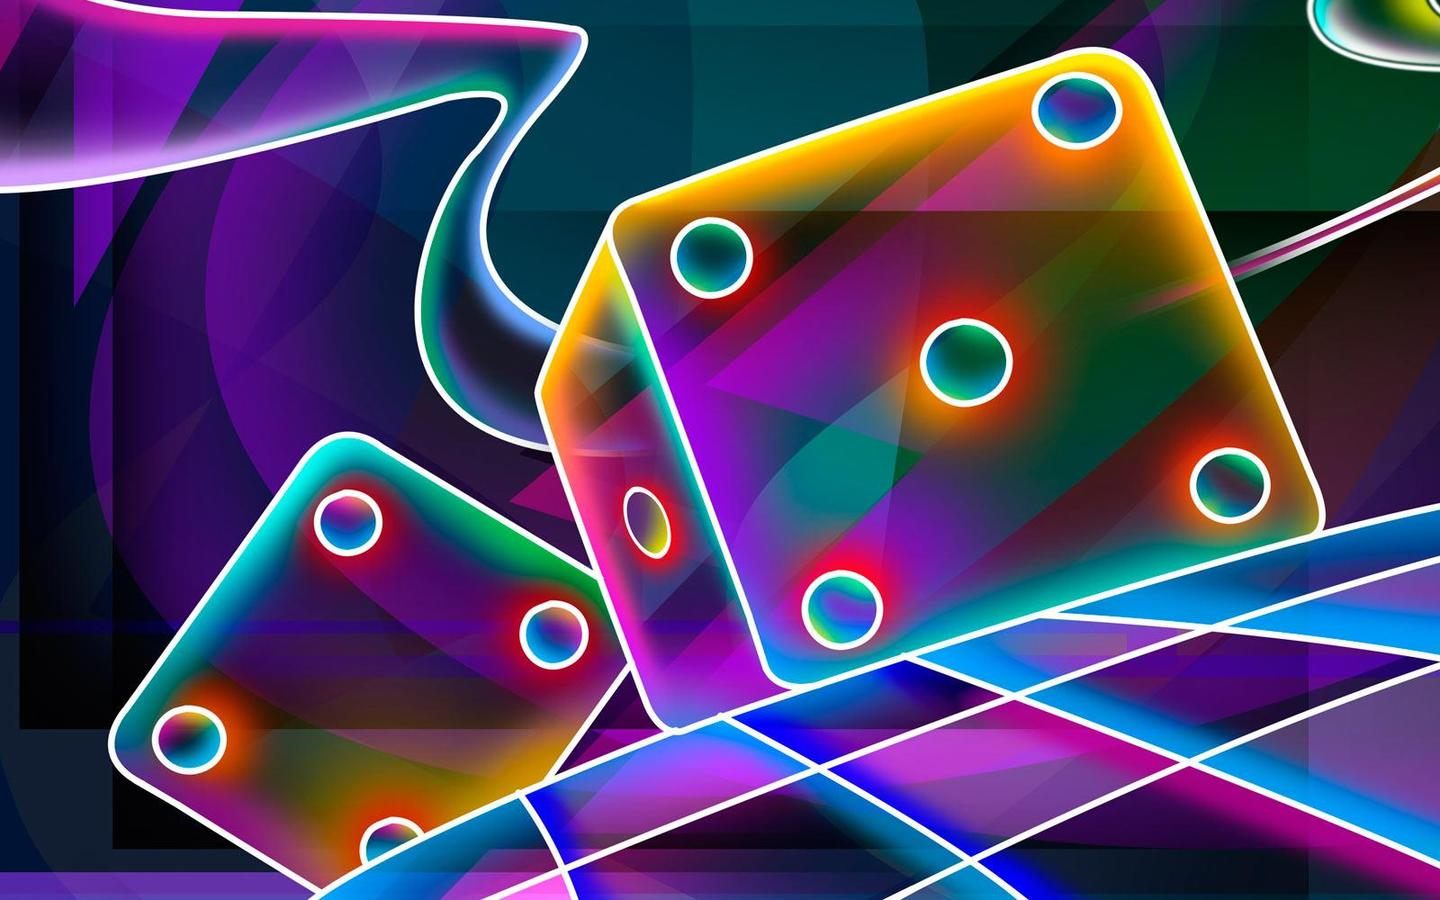 Cool neon wallpapers   SF Wallpaper 1440x900